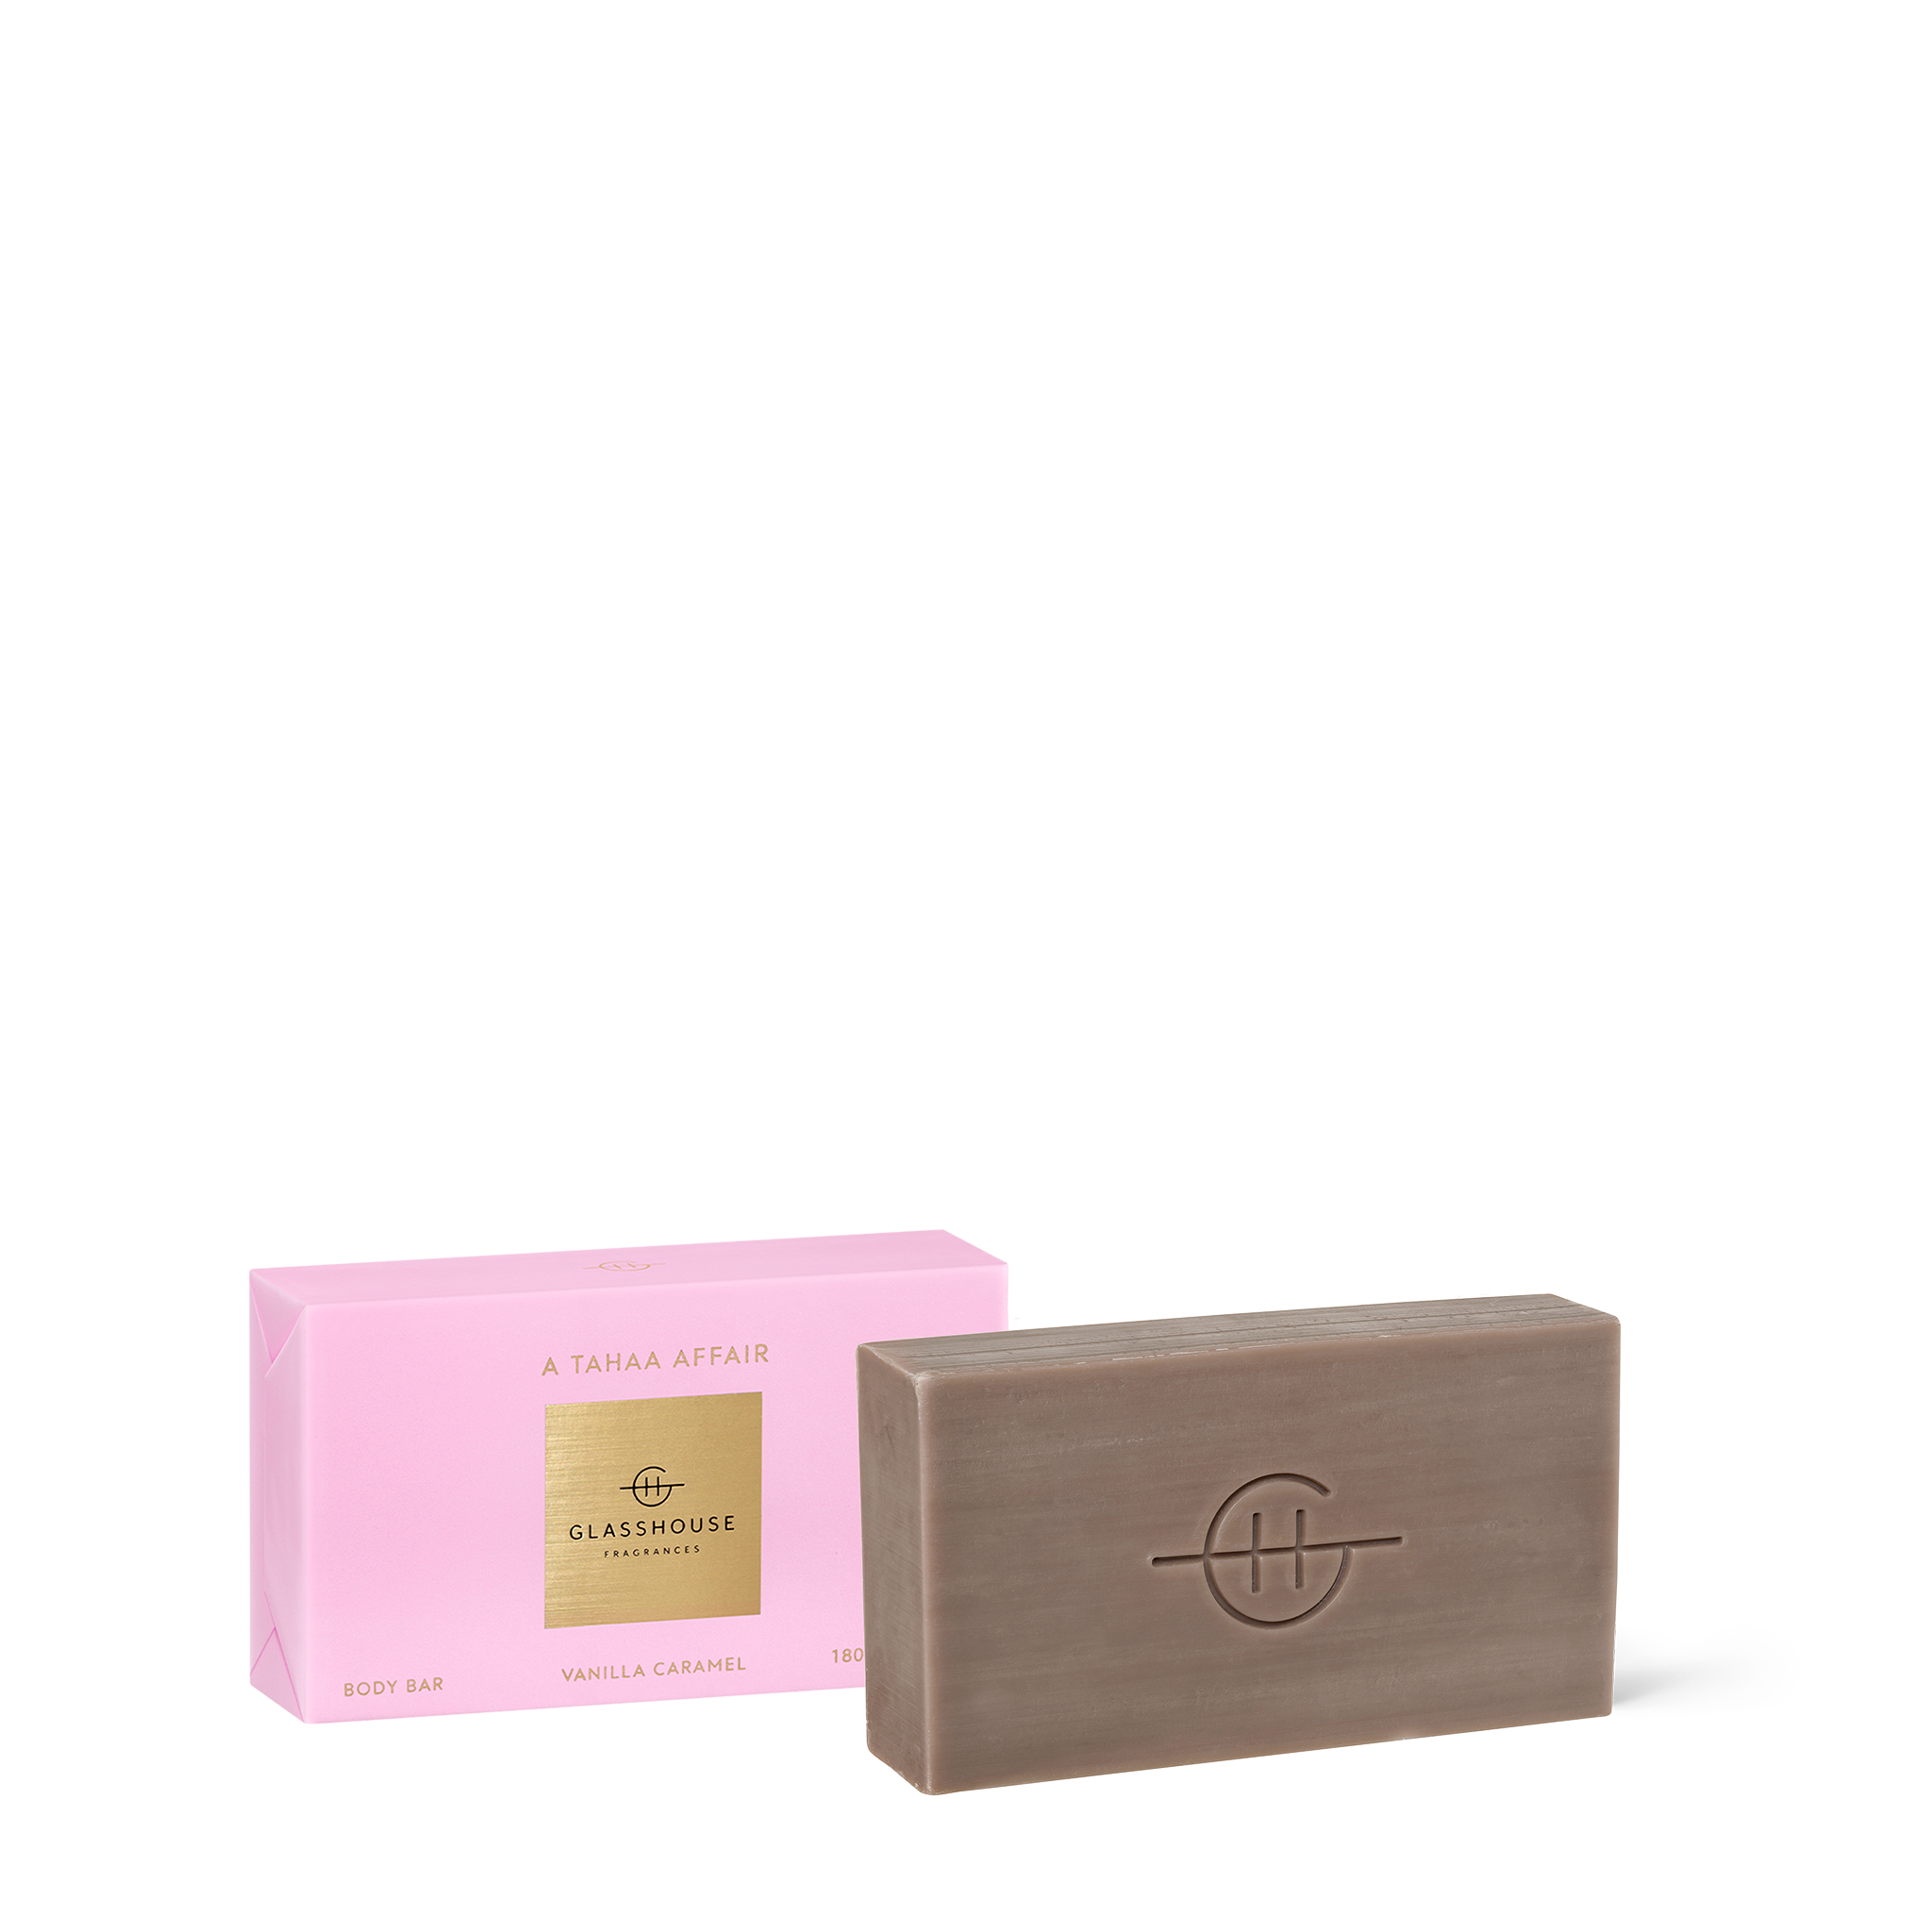 GLASSHOUSE FRAGRANCES A Tahaa Affair Body Bar 180g